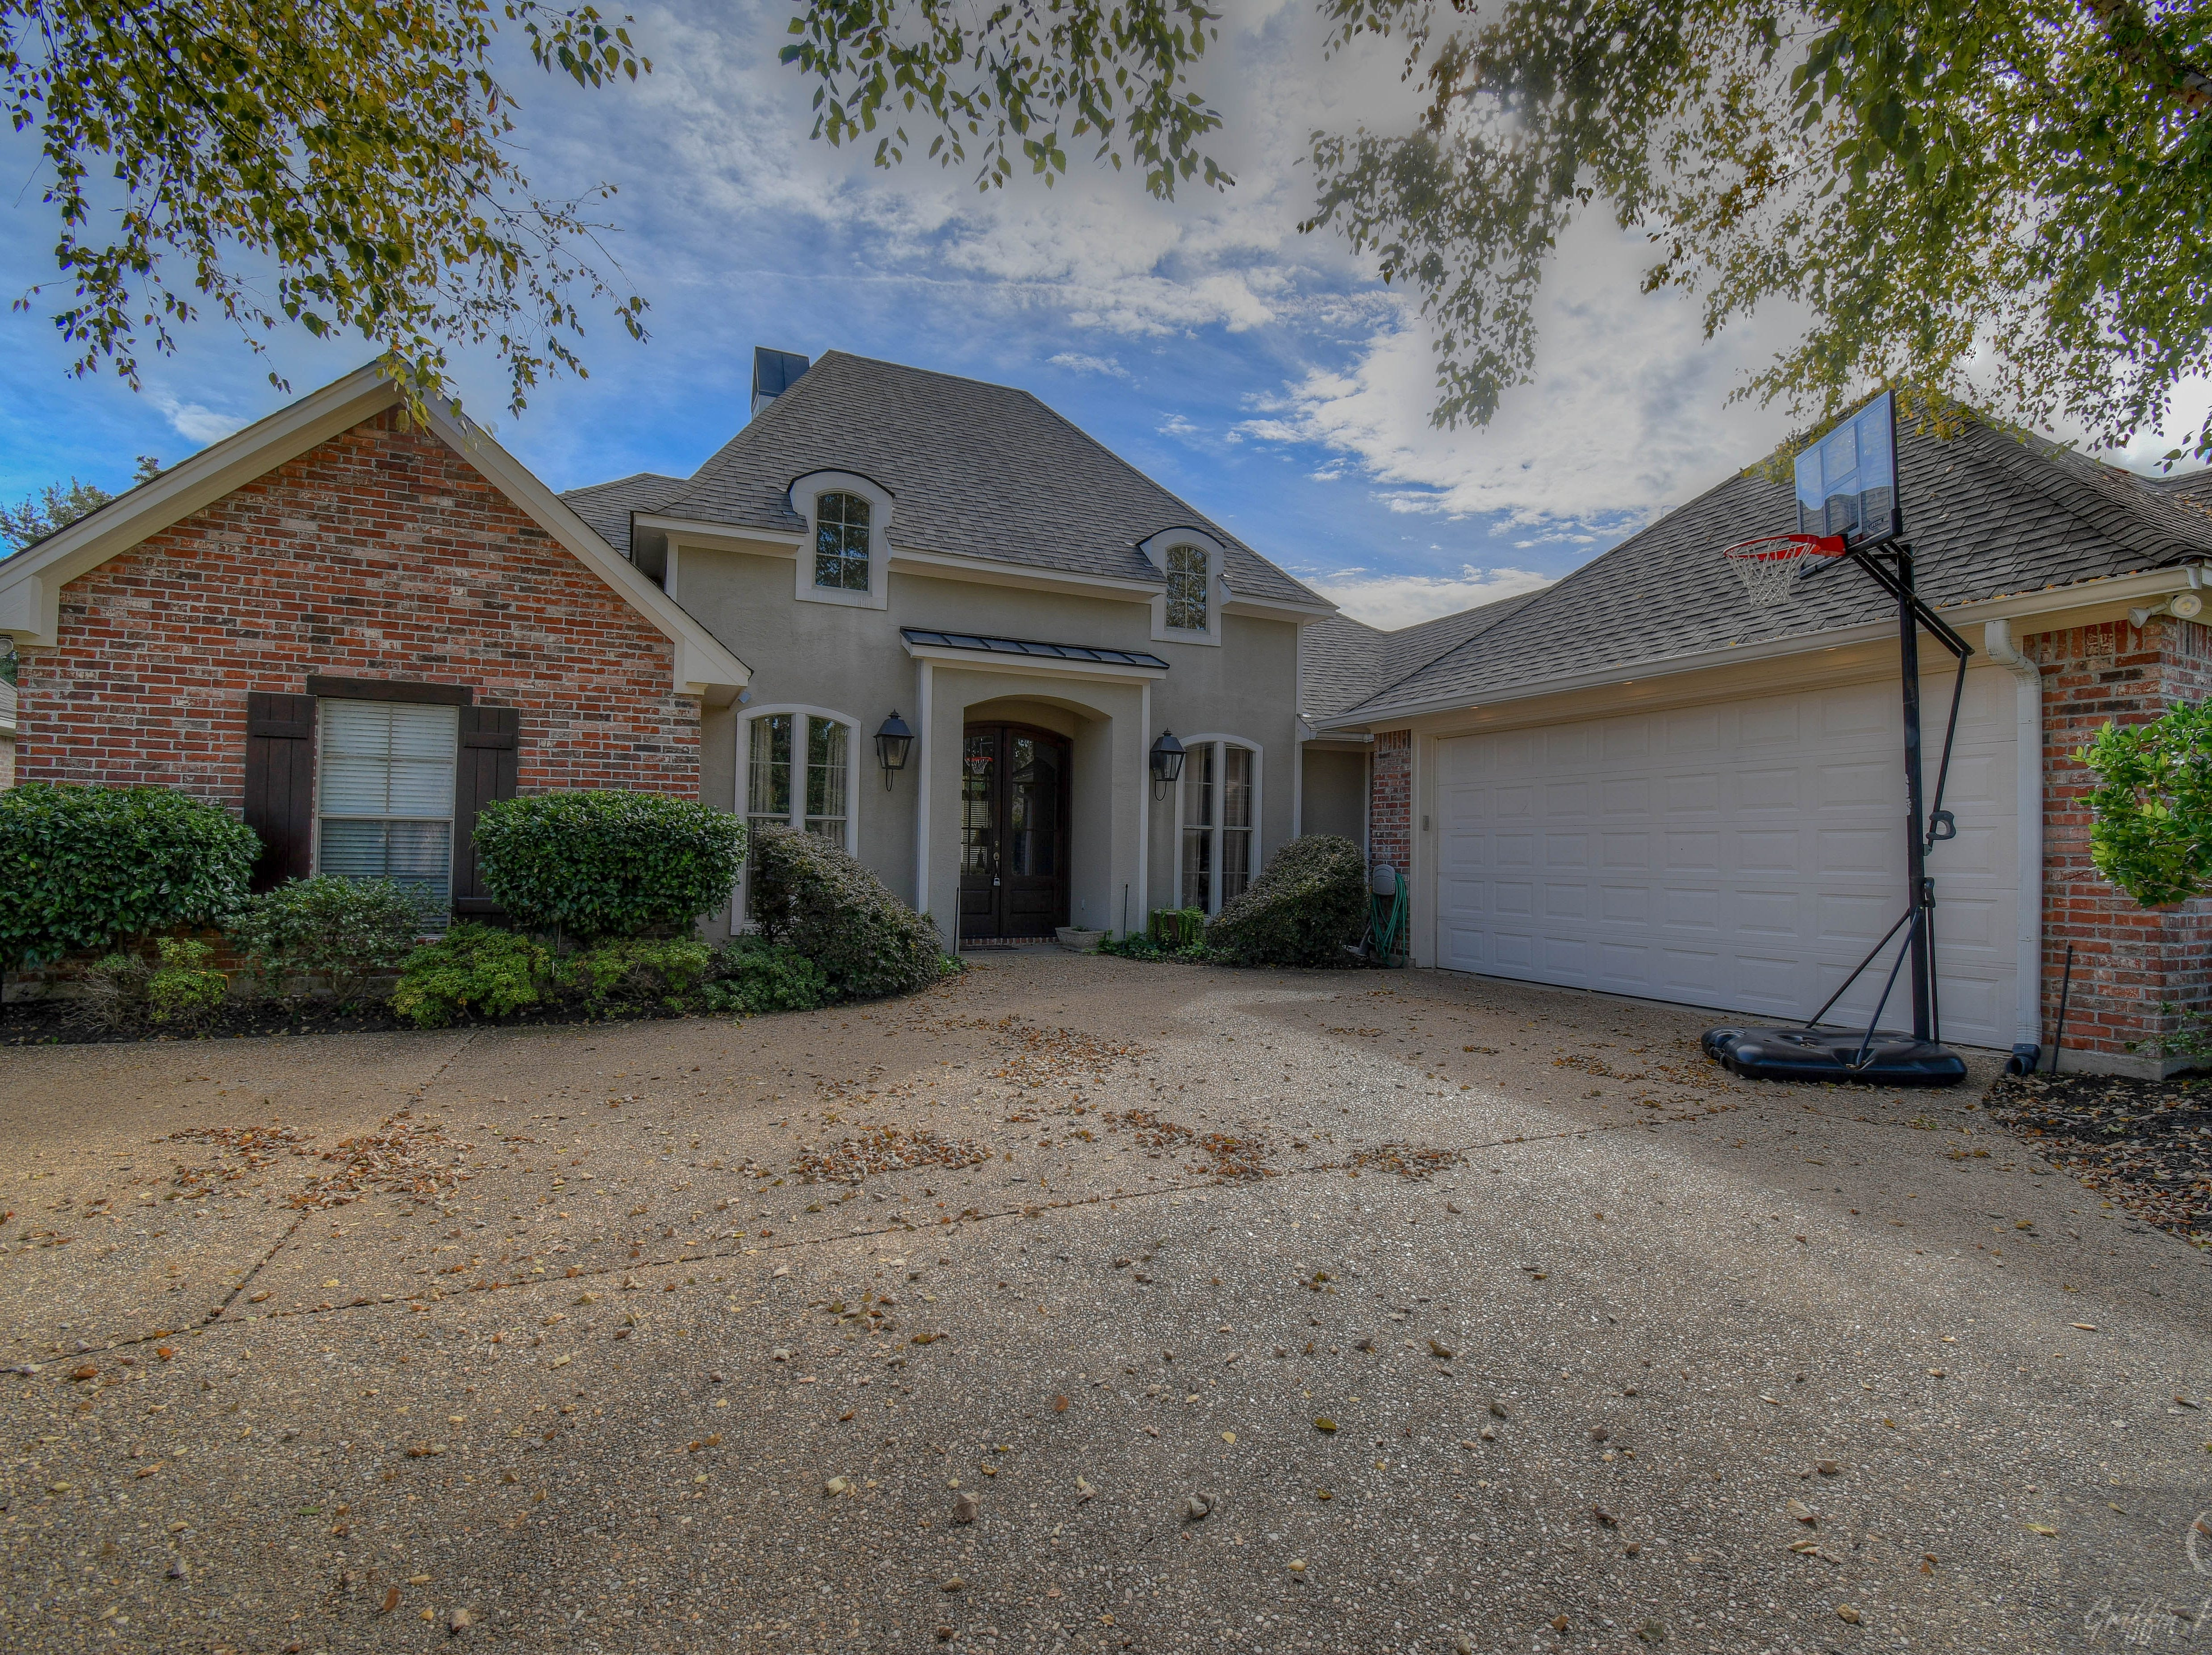 51 Turnbury Drive,   Bossier City  Price: $322,650  Details: 3 bedrooms, 3 bathrooms, 2,225 square feet  Special features: Stonebridge home with view of the pond, oversized garage for work space.   Contact: Donnette Koertge, 780-8969